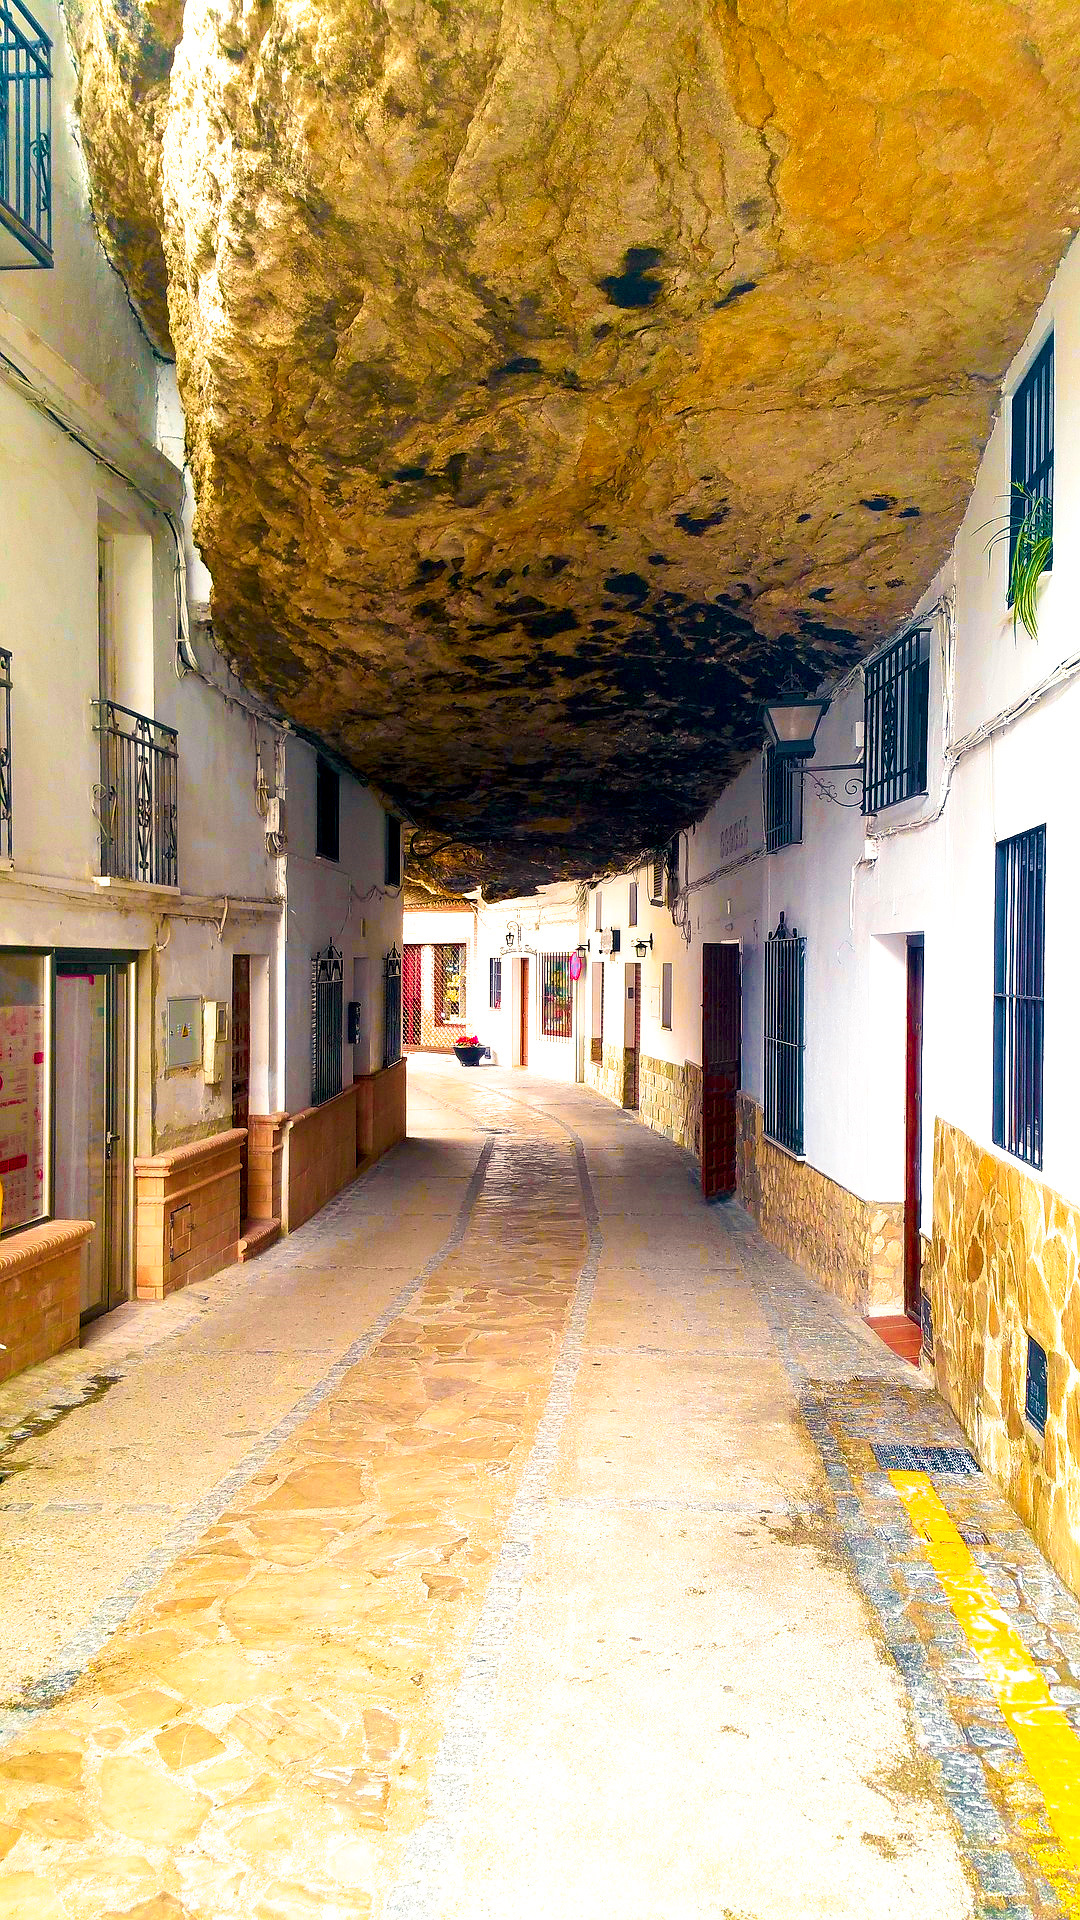 setenil de las Bodegas_travel_travelblogblogger_angellovesdreams